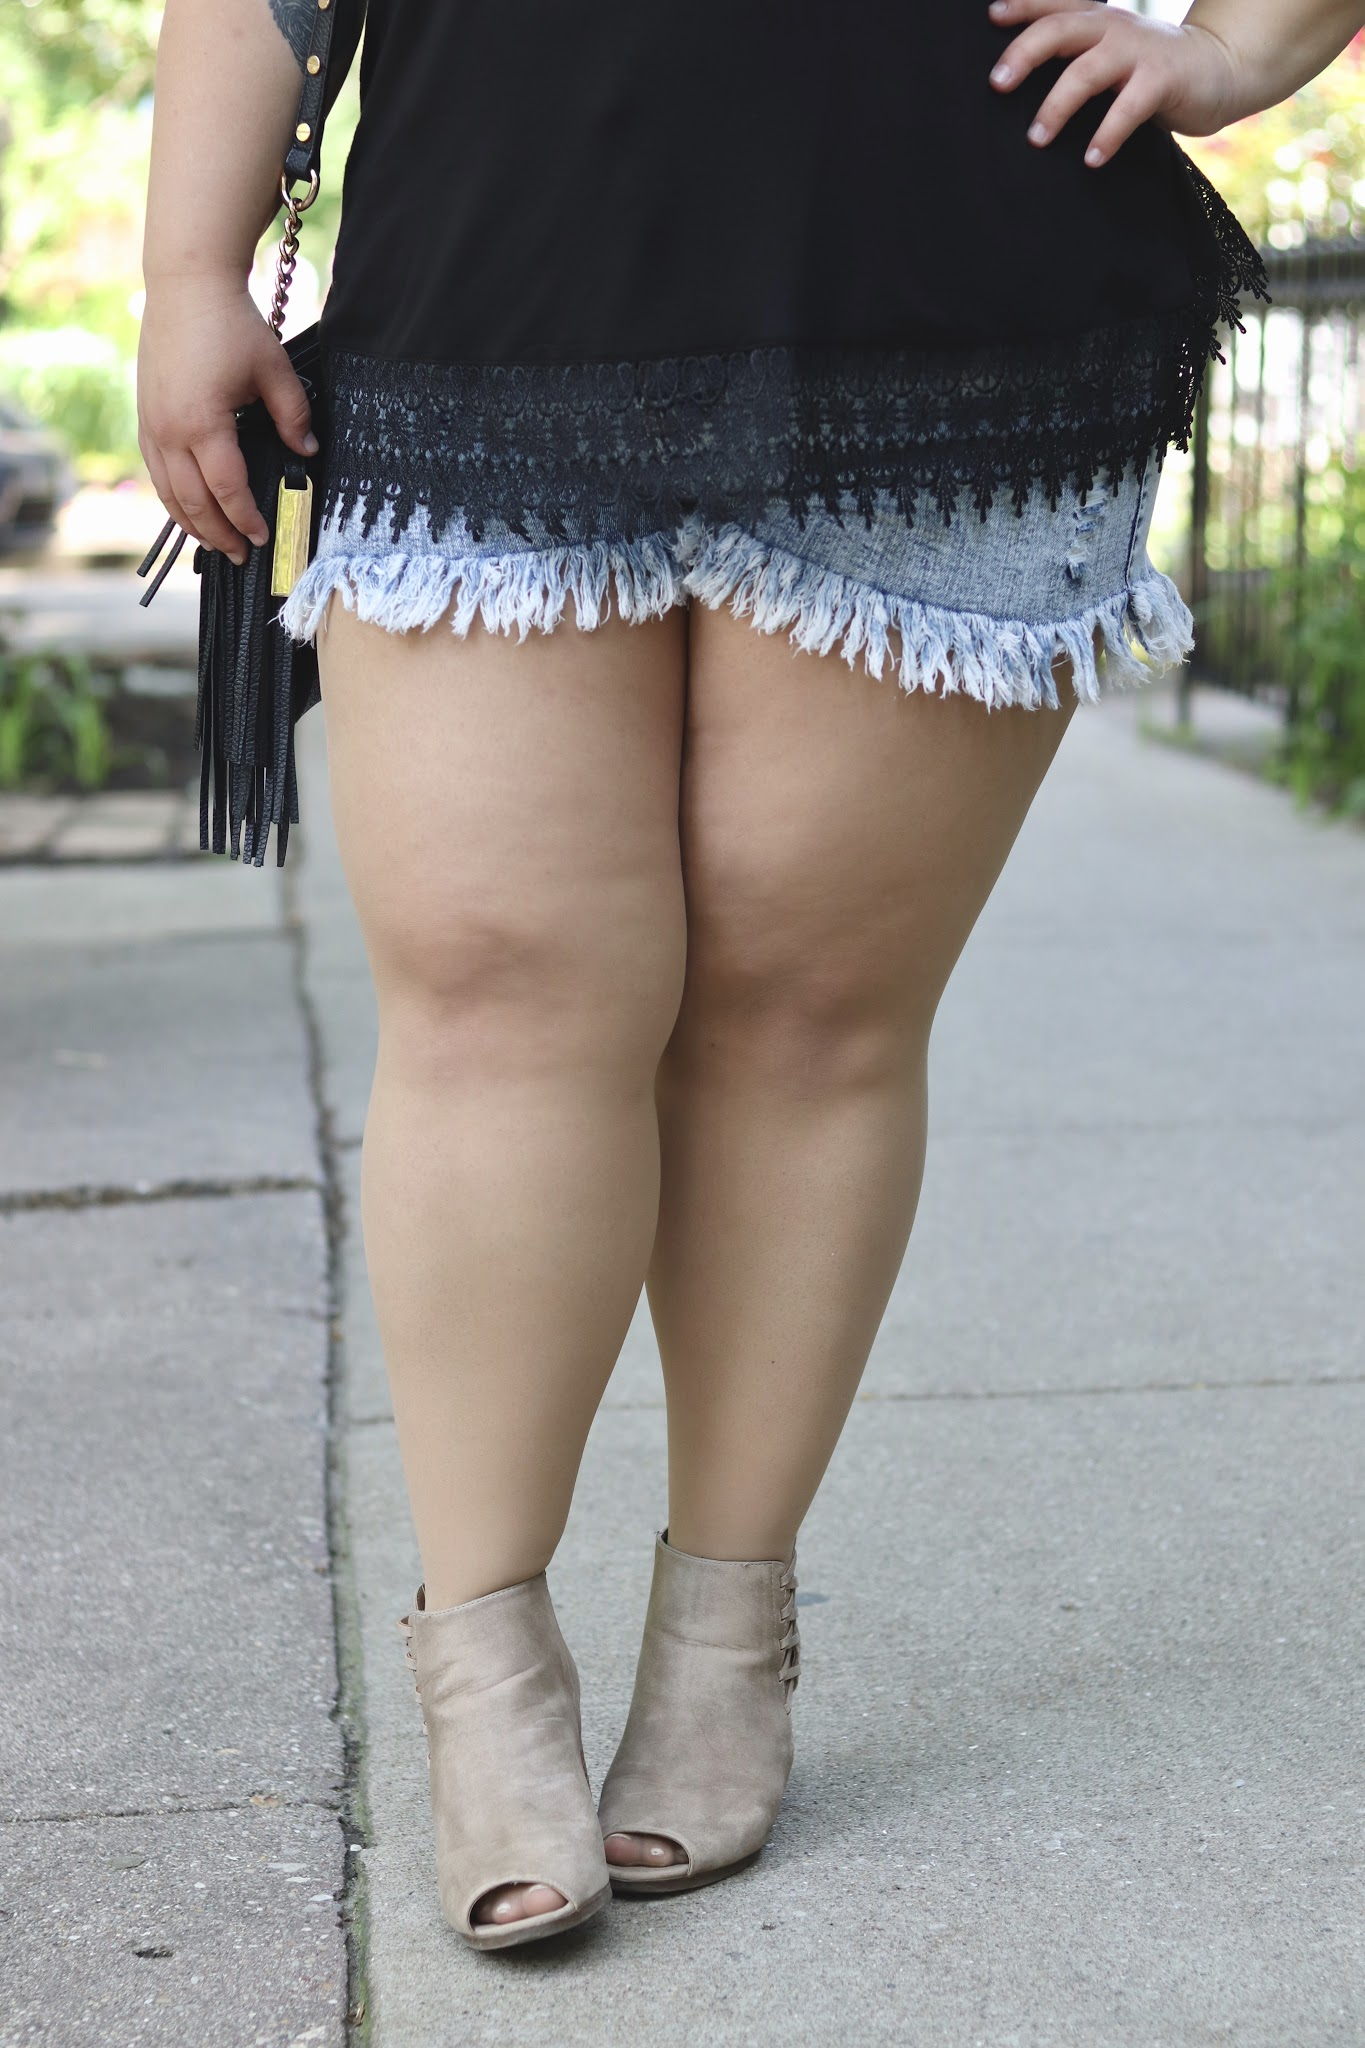 Natalie in the City shares here favorite chub rub help and tips from plus size opaque tights to anti-chafe shorts and balms.